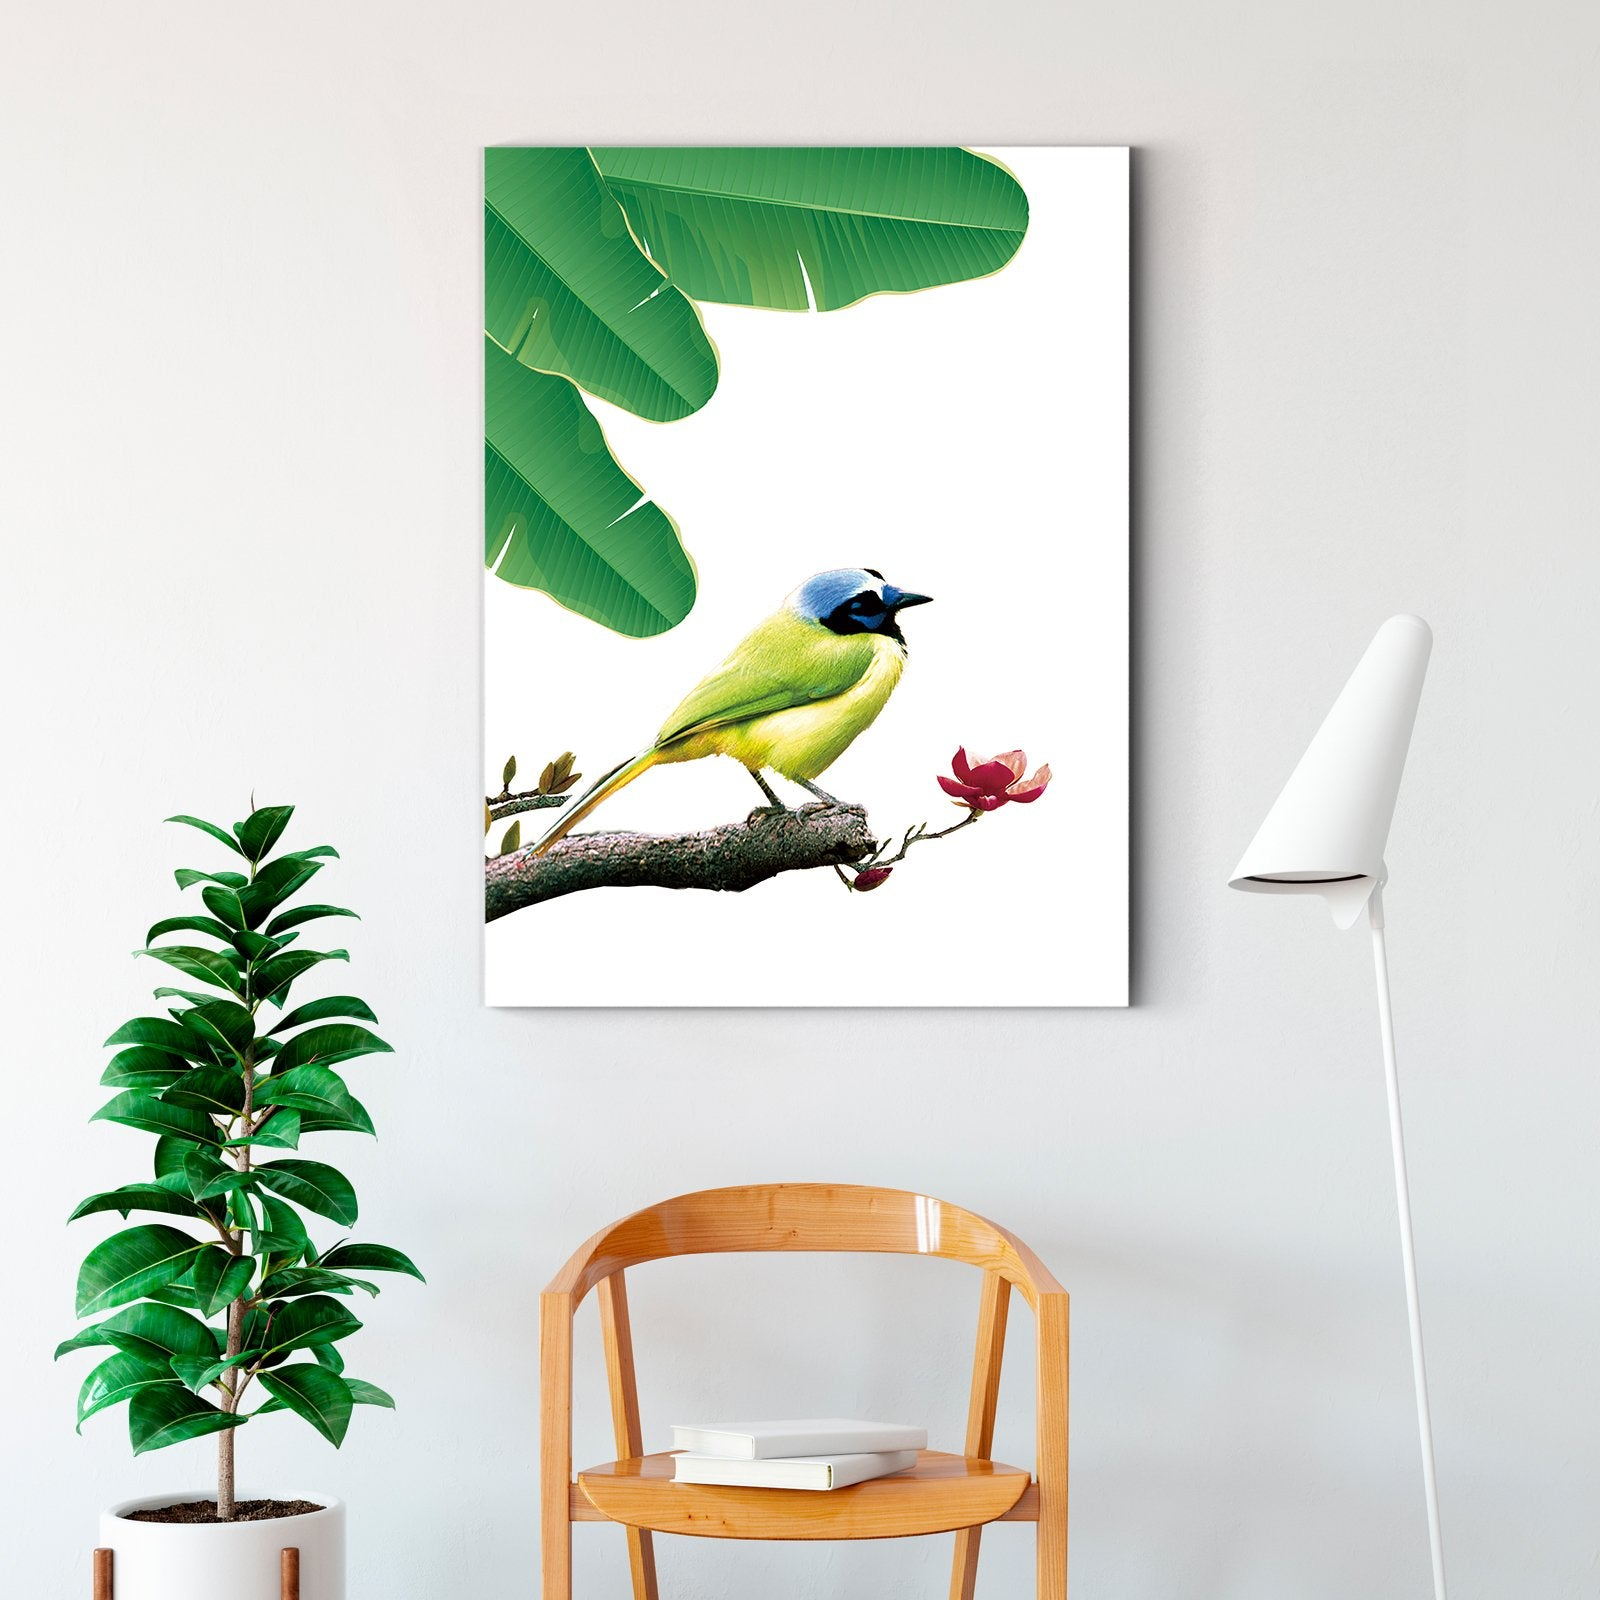 Flying Parrot - Animal Decorative Painting - Living Room-Multi Panel Wall Art030